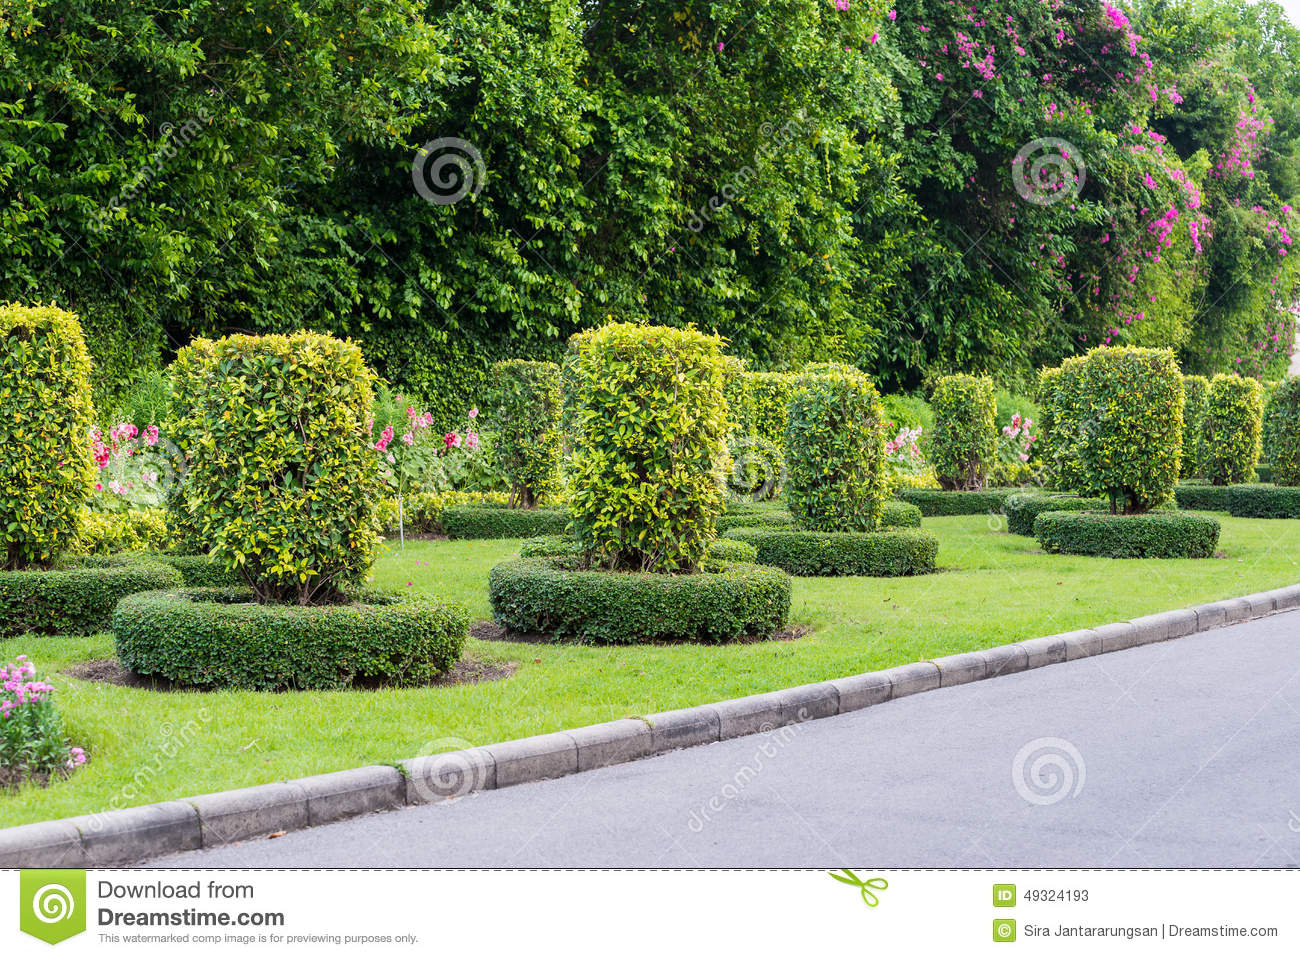 Gardening and landscaping with decorative trees stock photo image 49324193 - Decorative small trees for landscaping ...